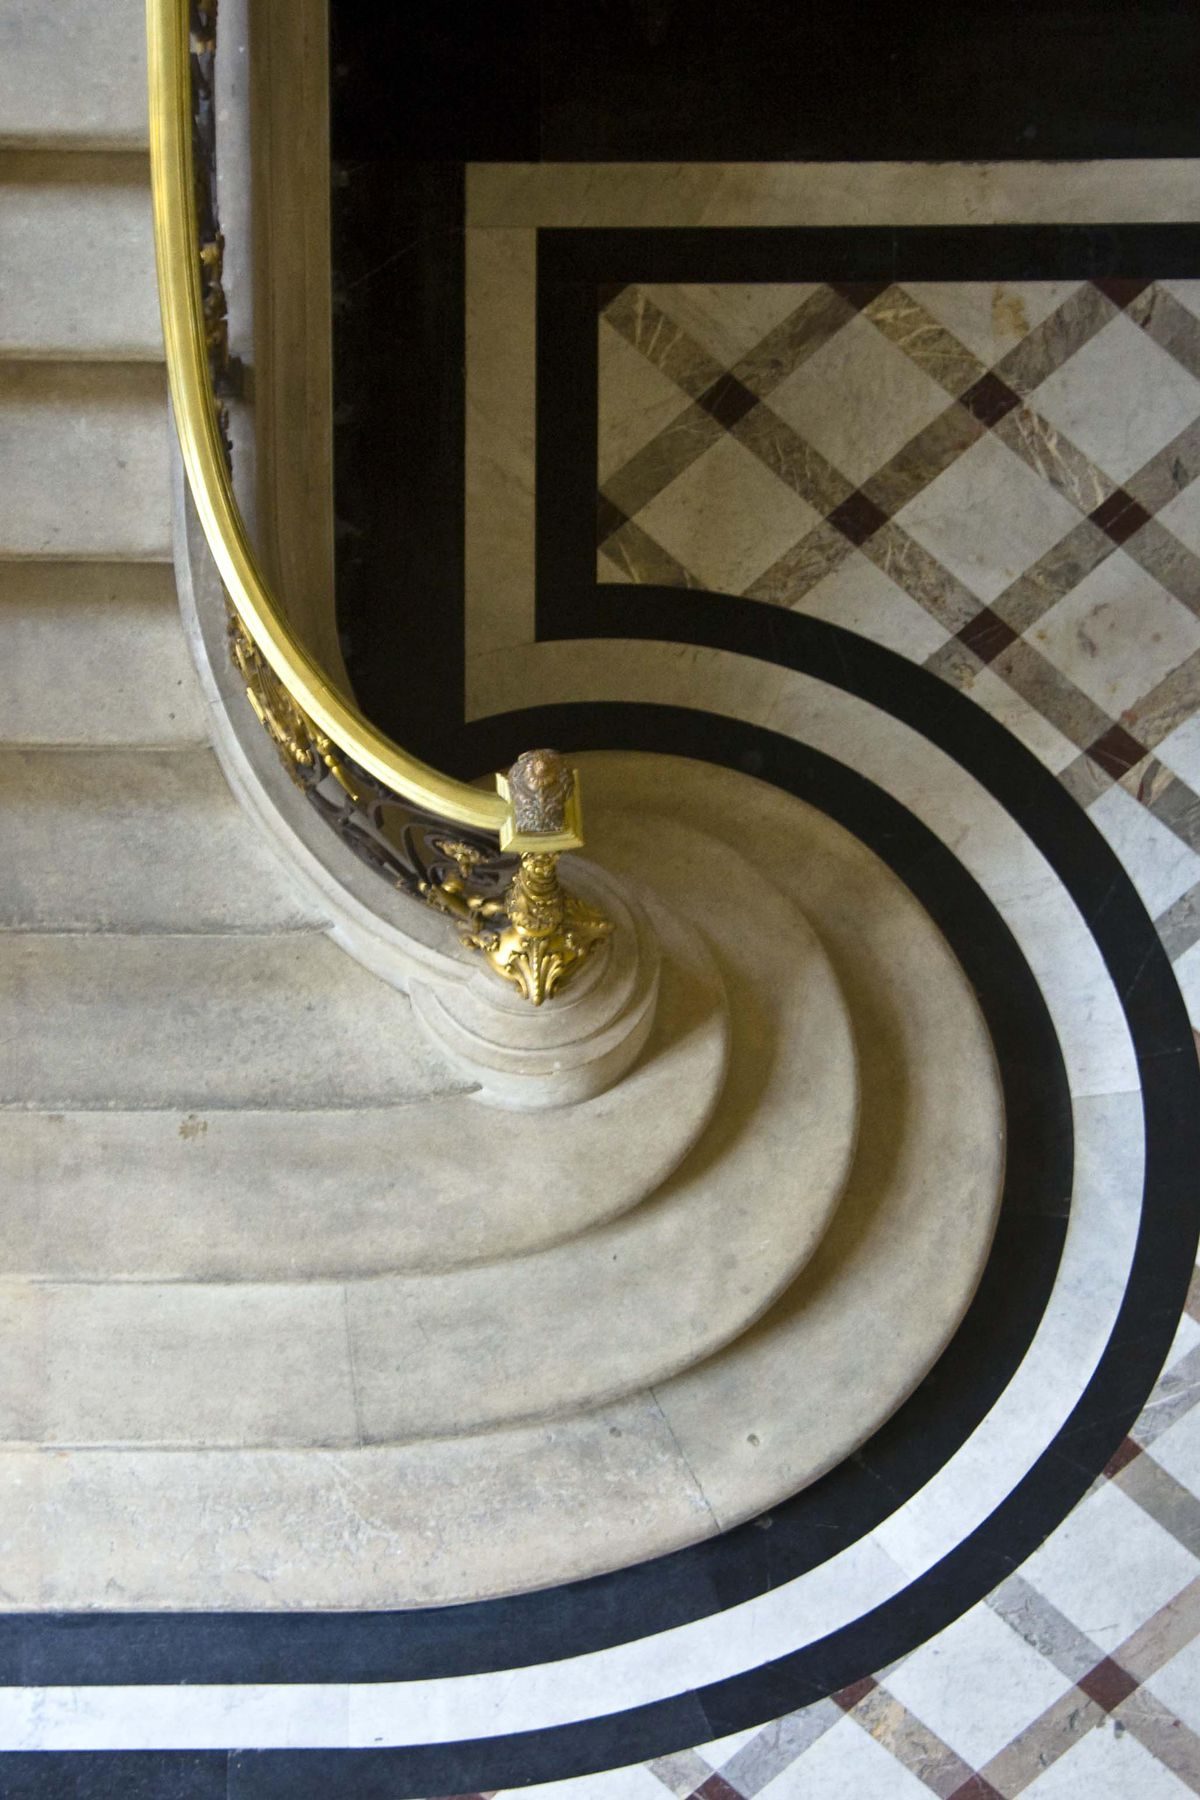 An aerial view of a Parisian staircase. The steps are marble and there is a patterned floor at the base of the staircase.